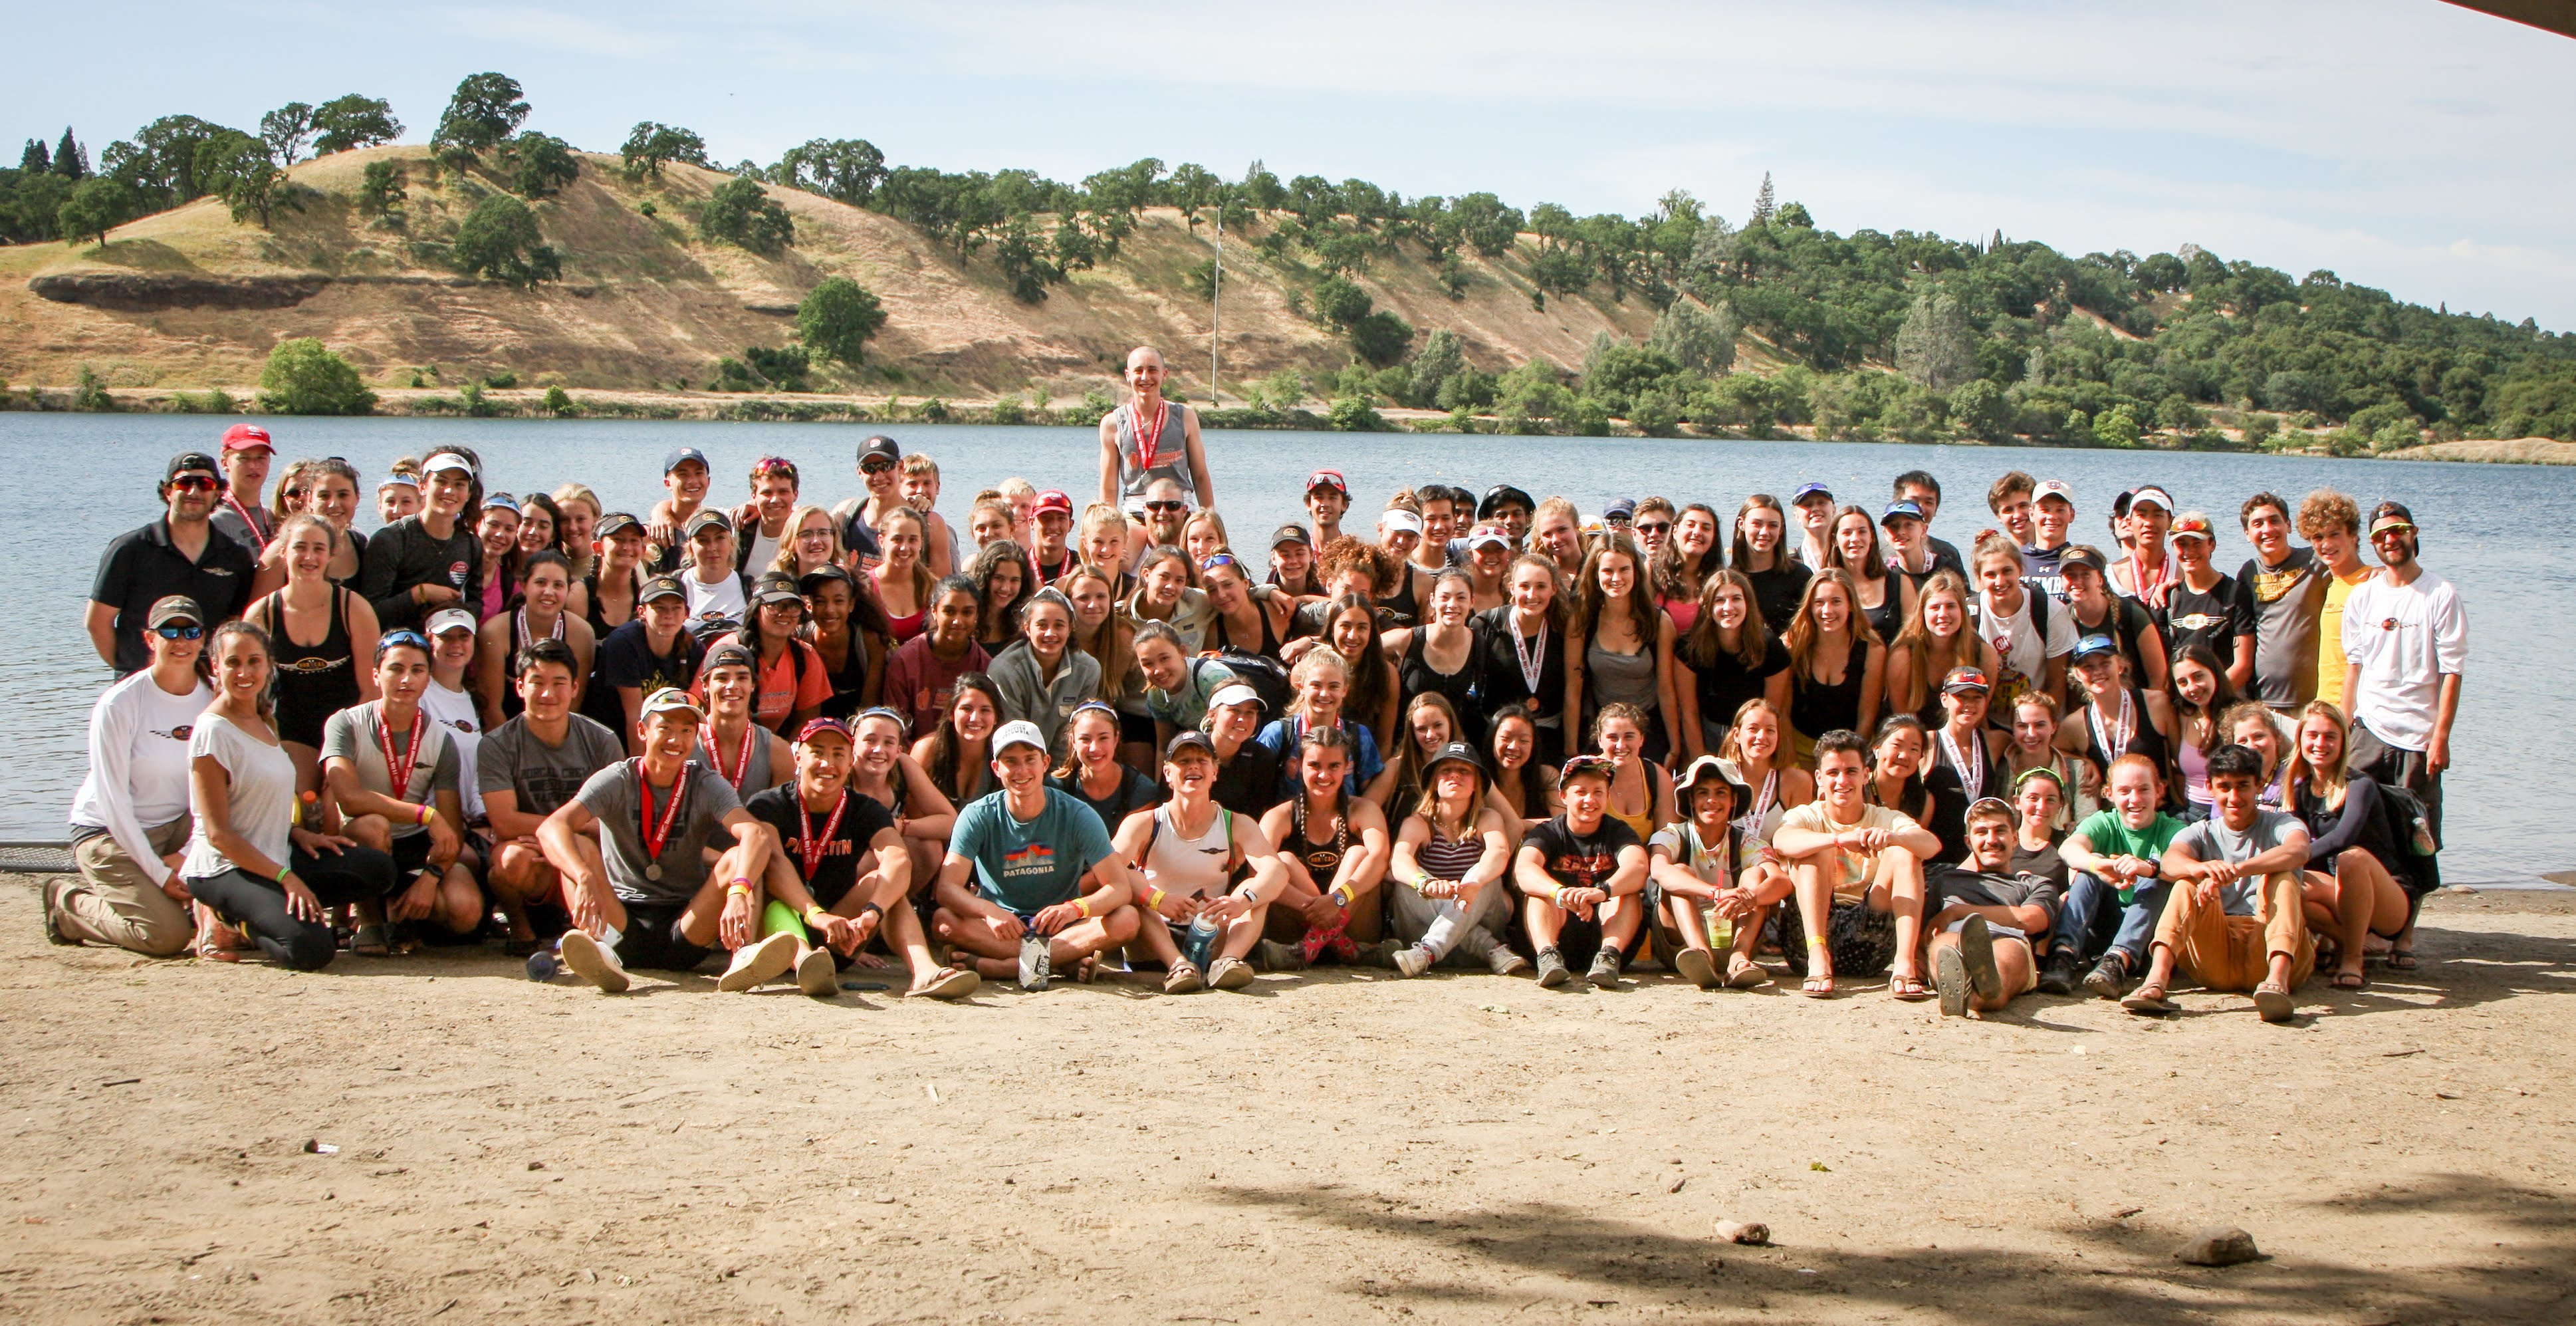 Norcal Crew | Development of youth through the sport of rowing